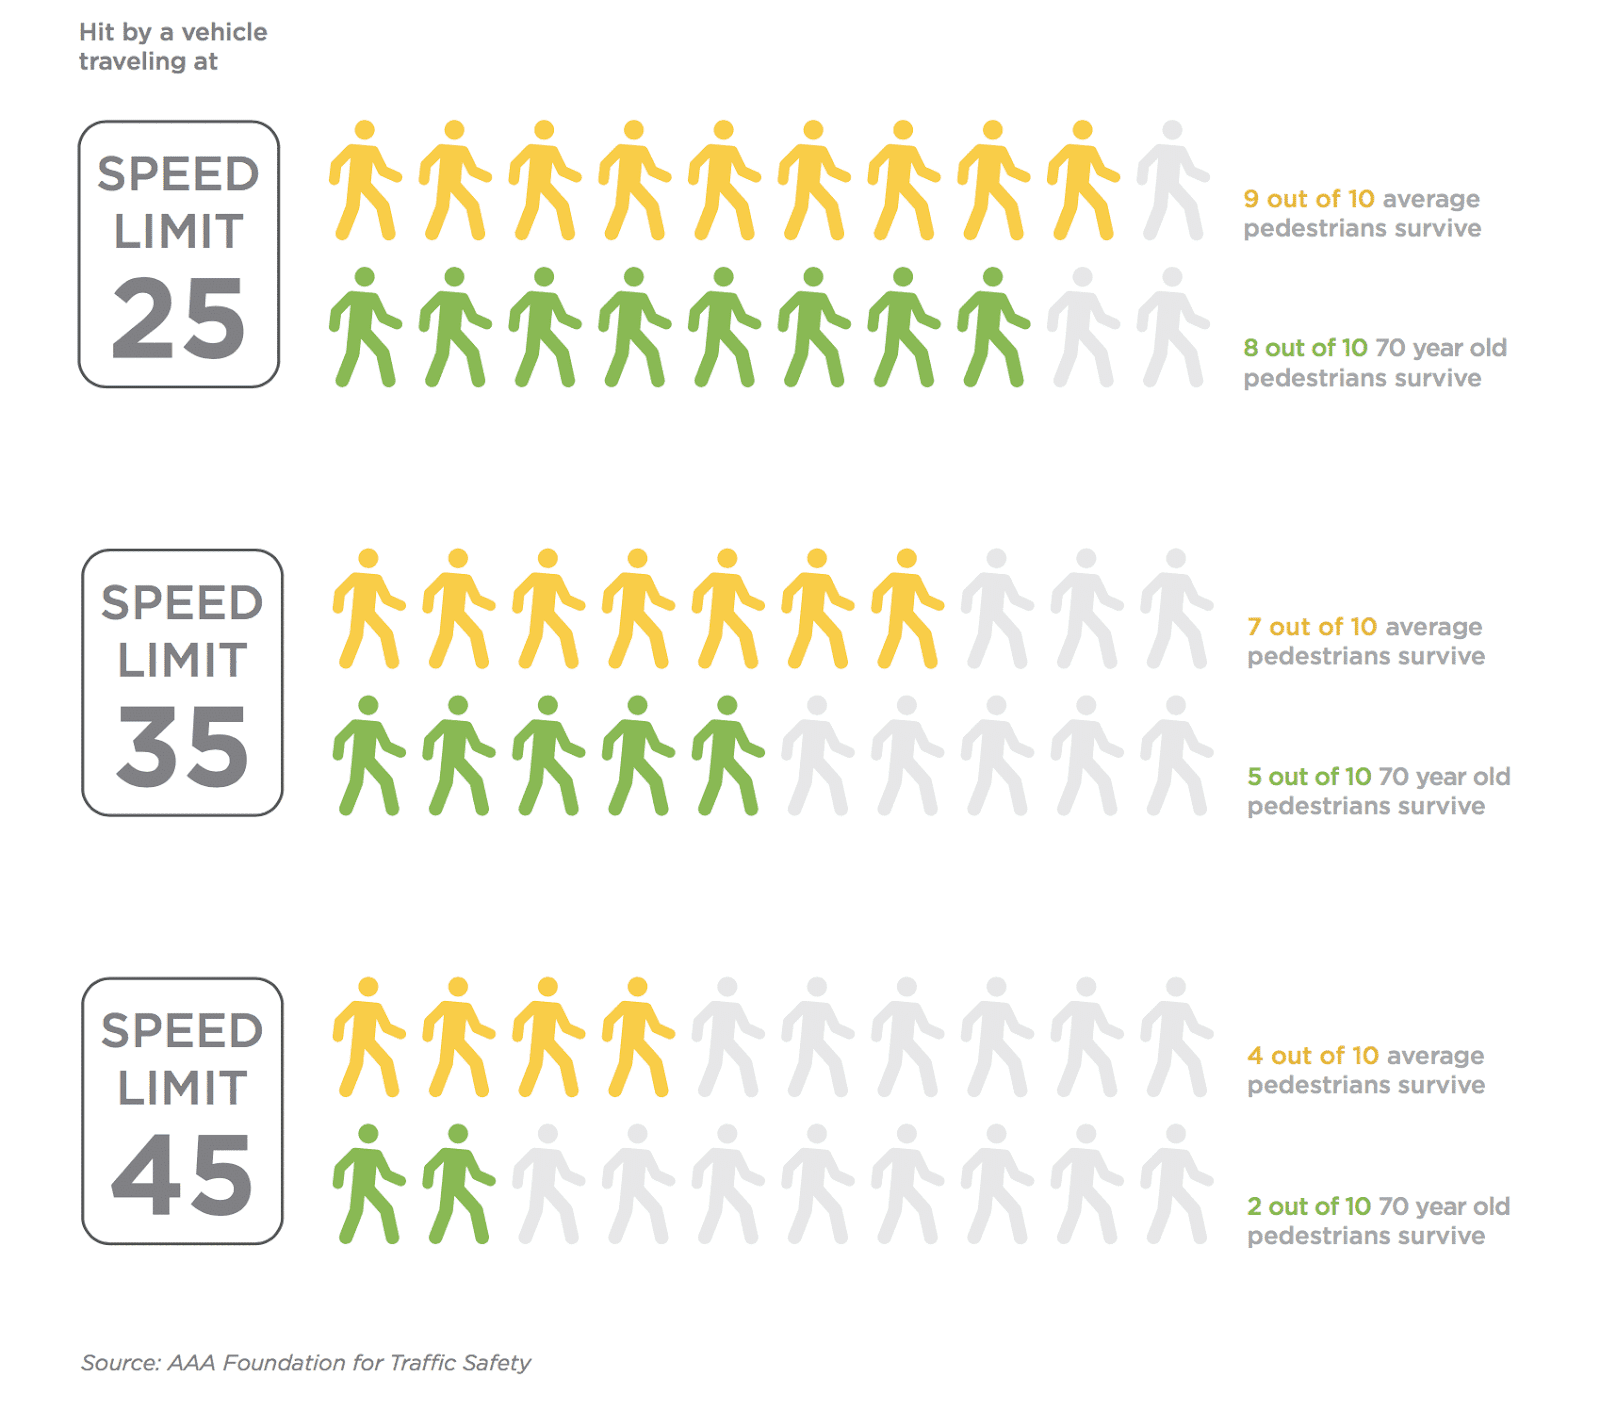 Research by the AAA Foundation for Traffic Safety finds that the risk of severe injury or death of a pedestrian quickly increases with speed.